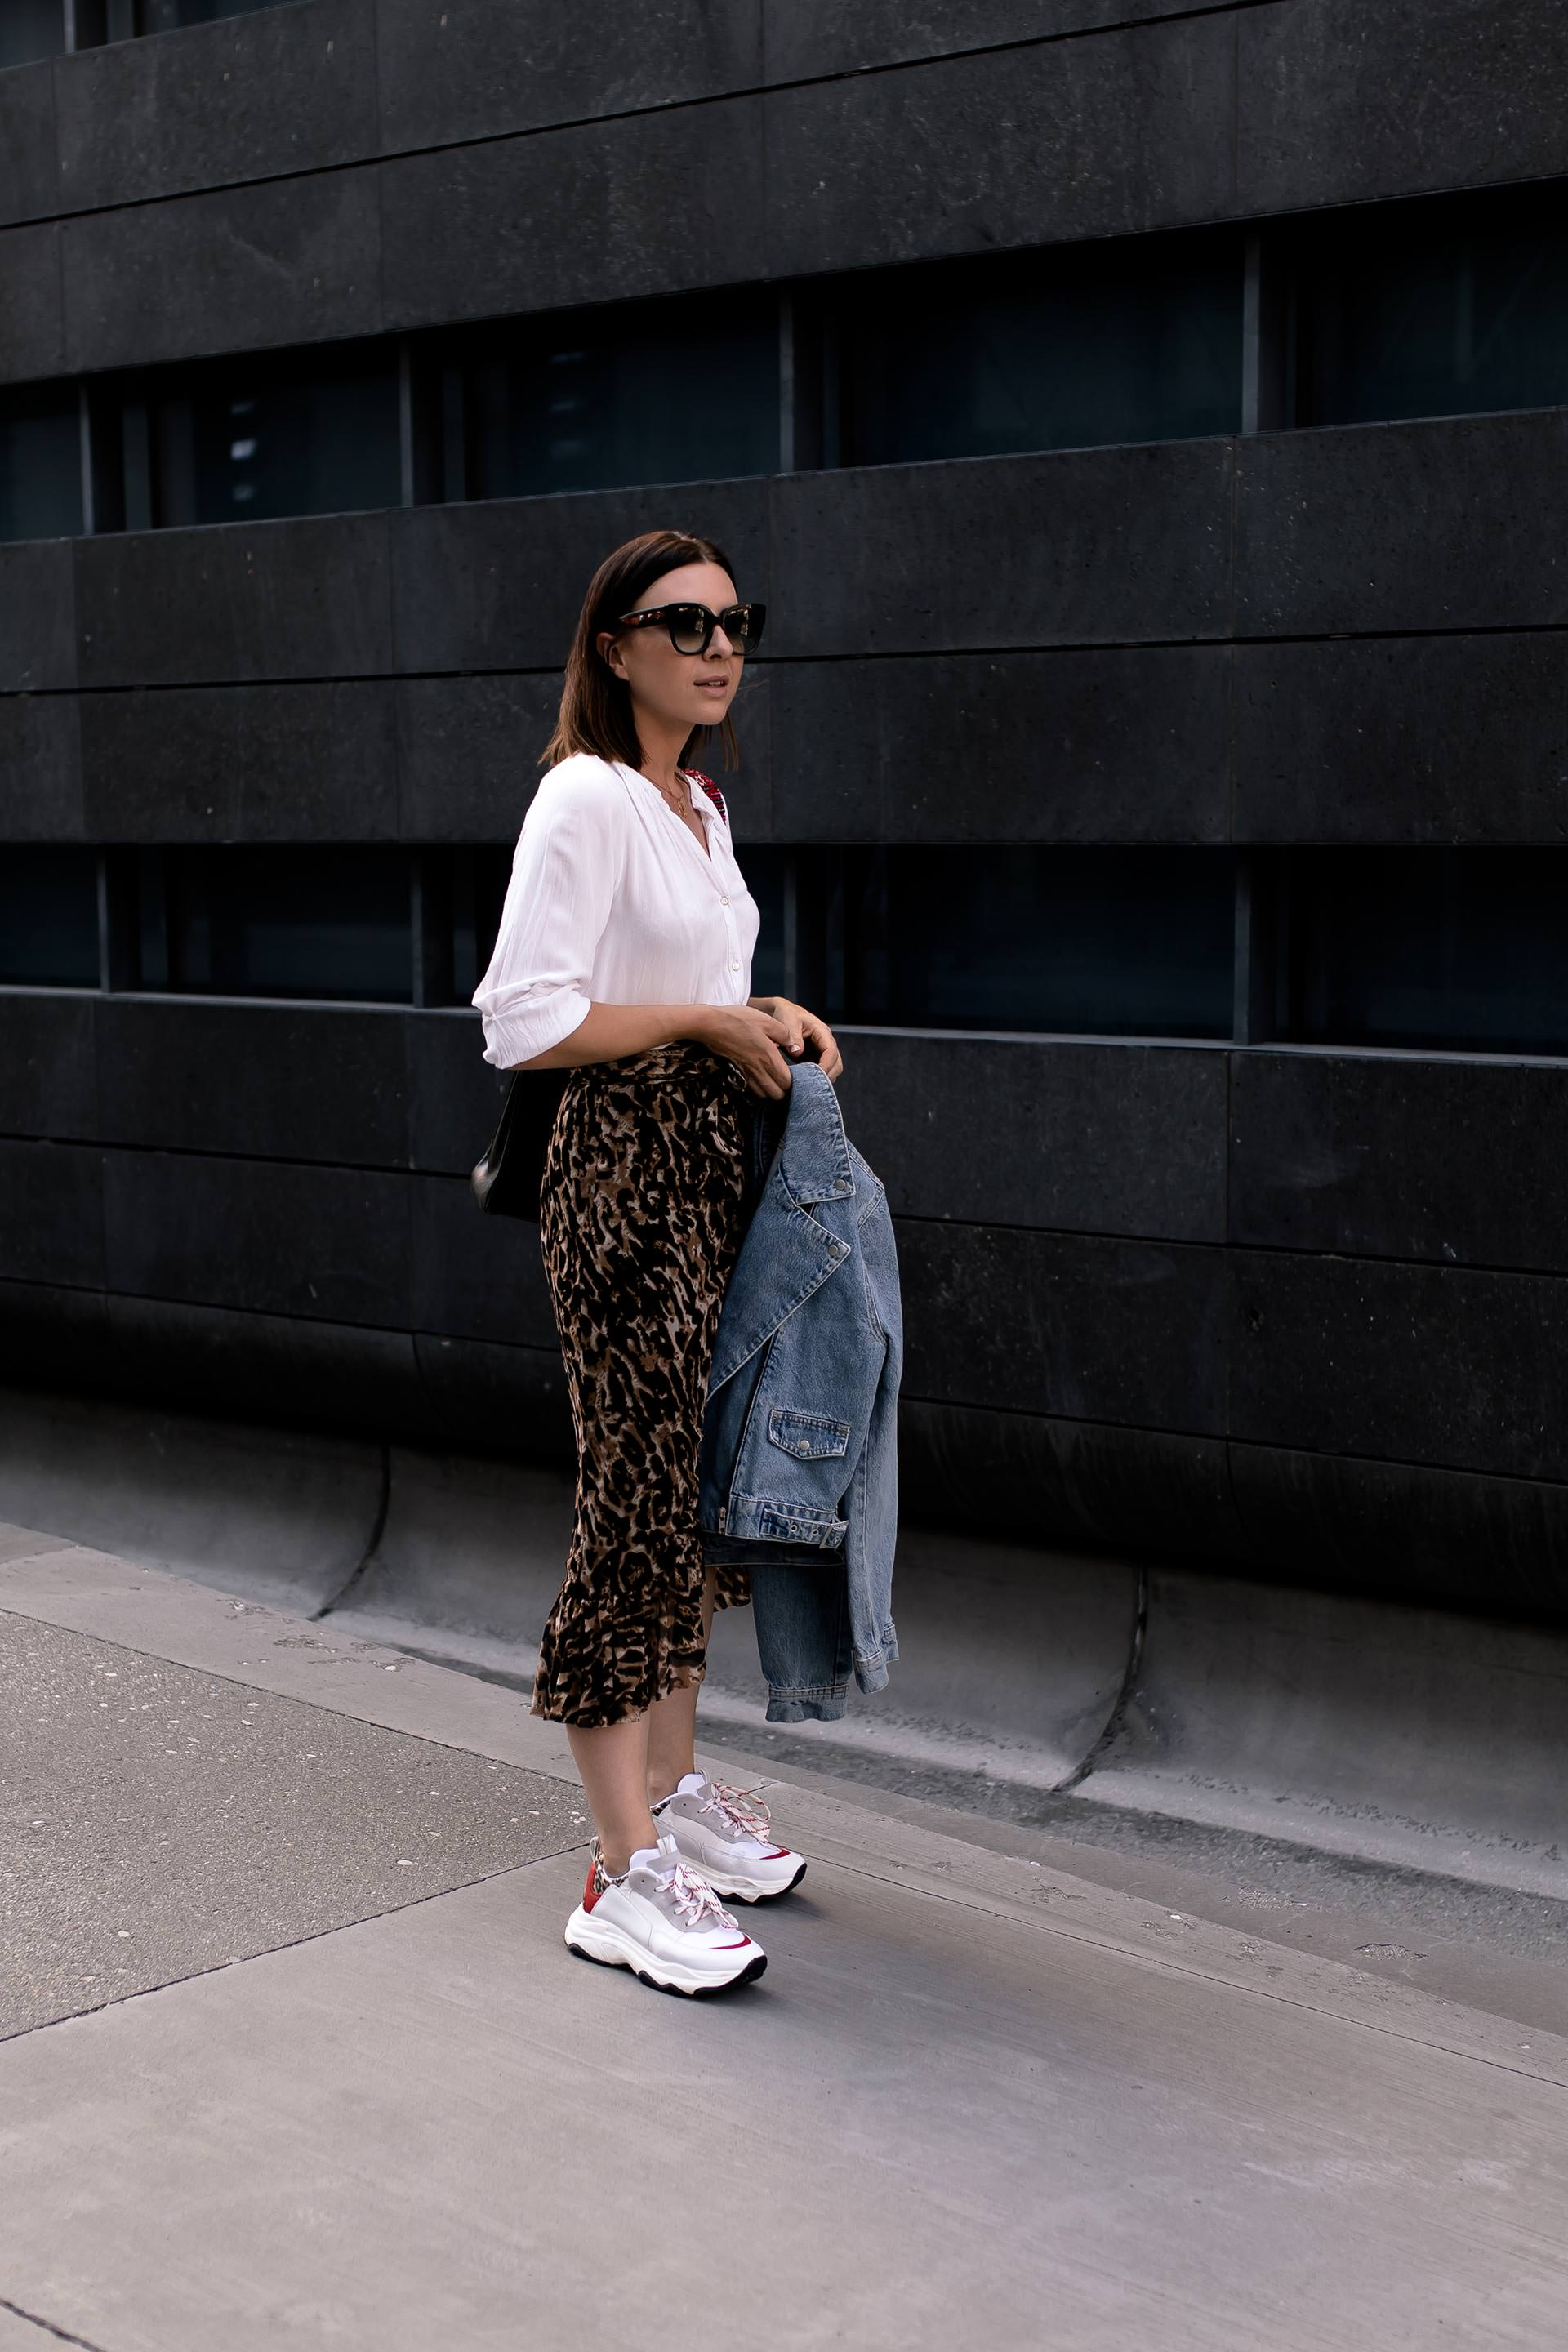 enthält unbeauftragte Werbung.Leo Print kombinieren, how to style leopard print, how to wear, how to style, leopardenmuster kombinieren, leopard print styling, styling tipps, mode tipps, ist leomuster noch in, leo print outfit, outfit idea, outfit mit leo muster, Spätsommer Outfit, Modeblogger, Fashion Magazin, Chunky Sneakers, Hermes Kelly Bag, www.whoismocca.com #kellybag #hermes #chunky #ootd #herbstmode #styling #leoprint